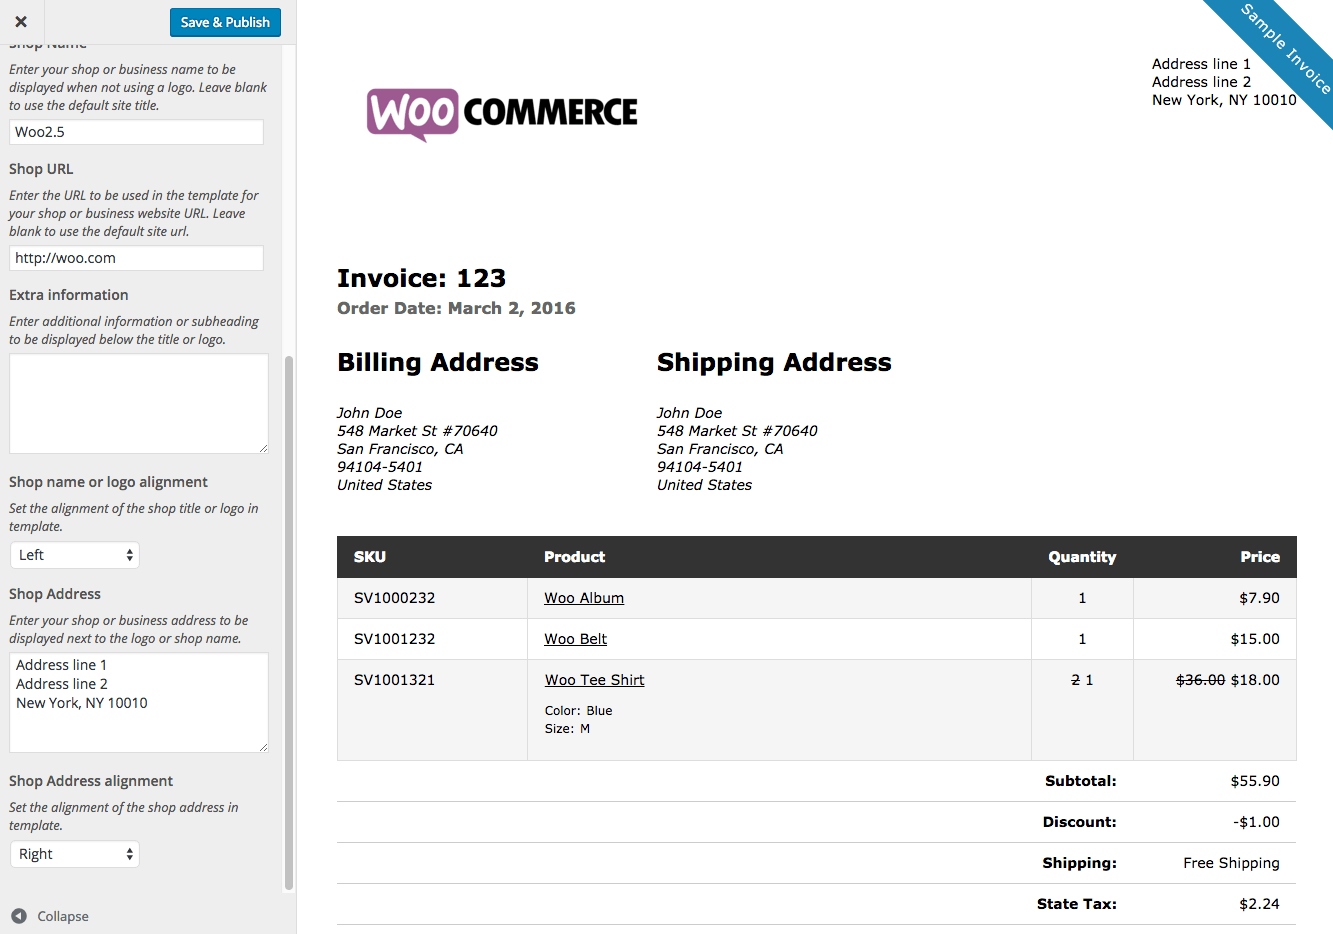 Centralasianshepherdus  Prepossessing Print Invoices Amp Packing Lists  Woocommerce With Glamorous Woocommerce Print Invoices  Packing Lists Customizer With Divine Recipient Created Tax Invoice Template Also Free Invoicing Programs In Addition Transport Invoice And Proforma Invoice Word As Well As Online Invoice Maker Free Additionally Invoice Cost Of New Car From Woocommercecom With Centralasianshepherdus  Glamorous Print Invoices Amp Packing Lists  Woocommerce With Divine Woocommerce Print Invoices  Packing Lists Customizer And Prepossessing Recipient Created Tax Invoice Template Also Free Invoicing Programs In Addition Transport Invoice From Woocommercecom